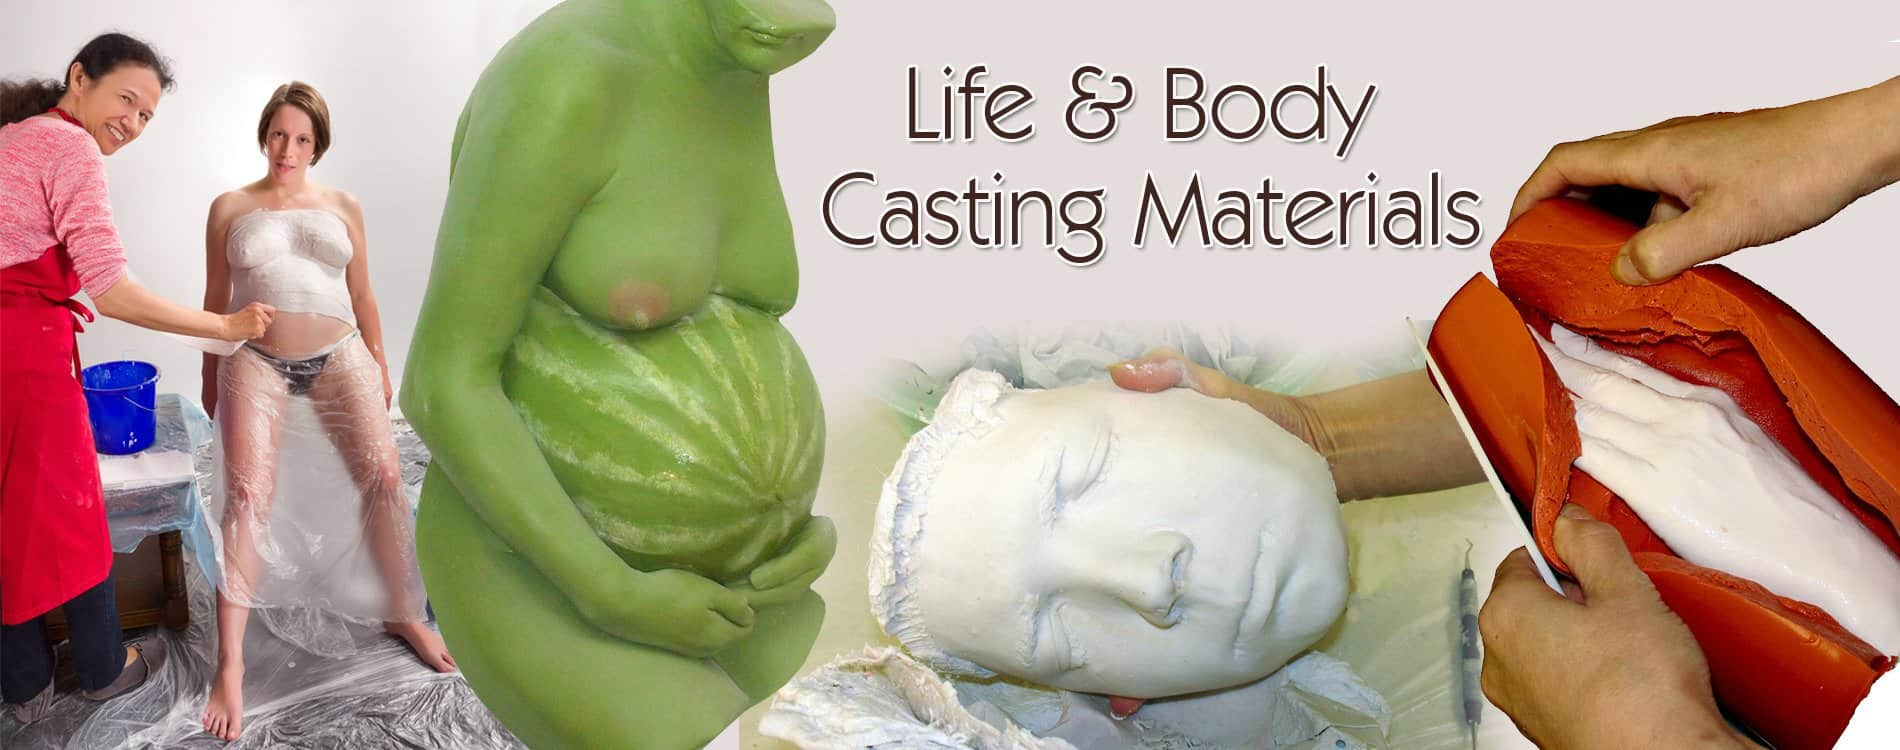 Life Casting and Body Casting Materials including Alginate